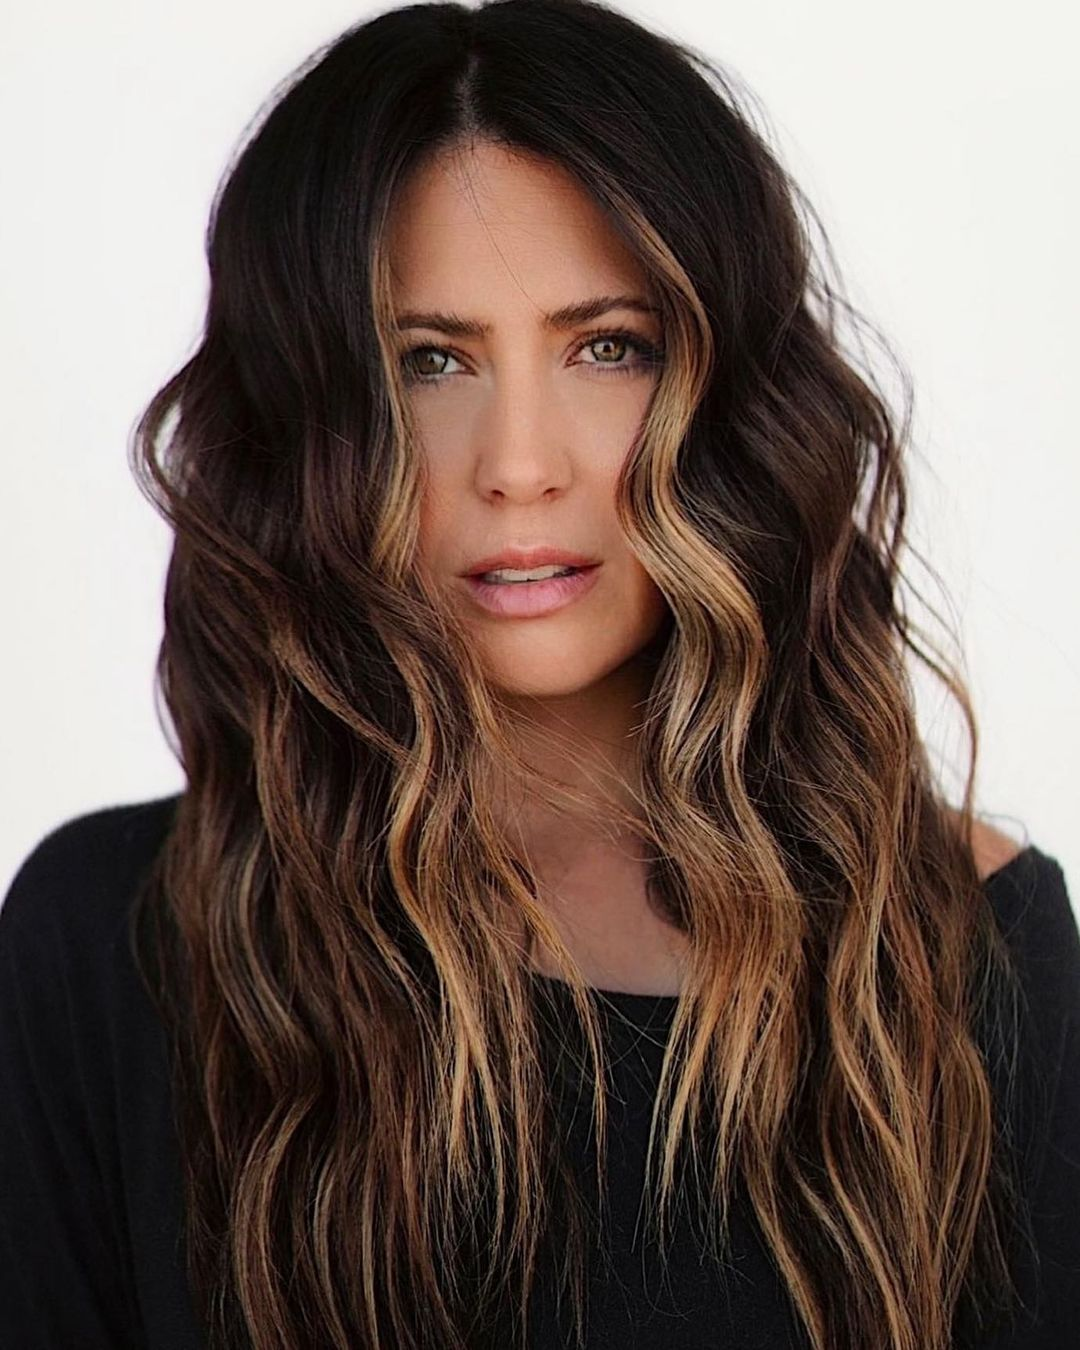 50 Awesome Long Layered Hair Ideas For 2021 images 37